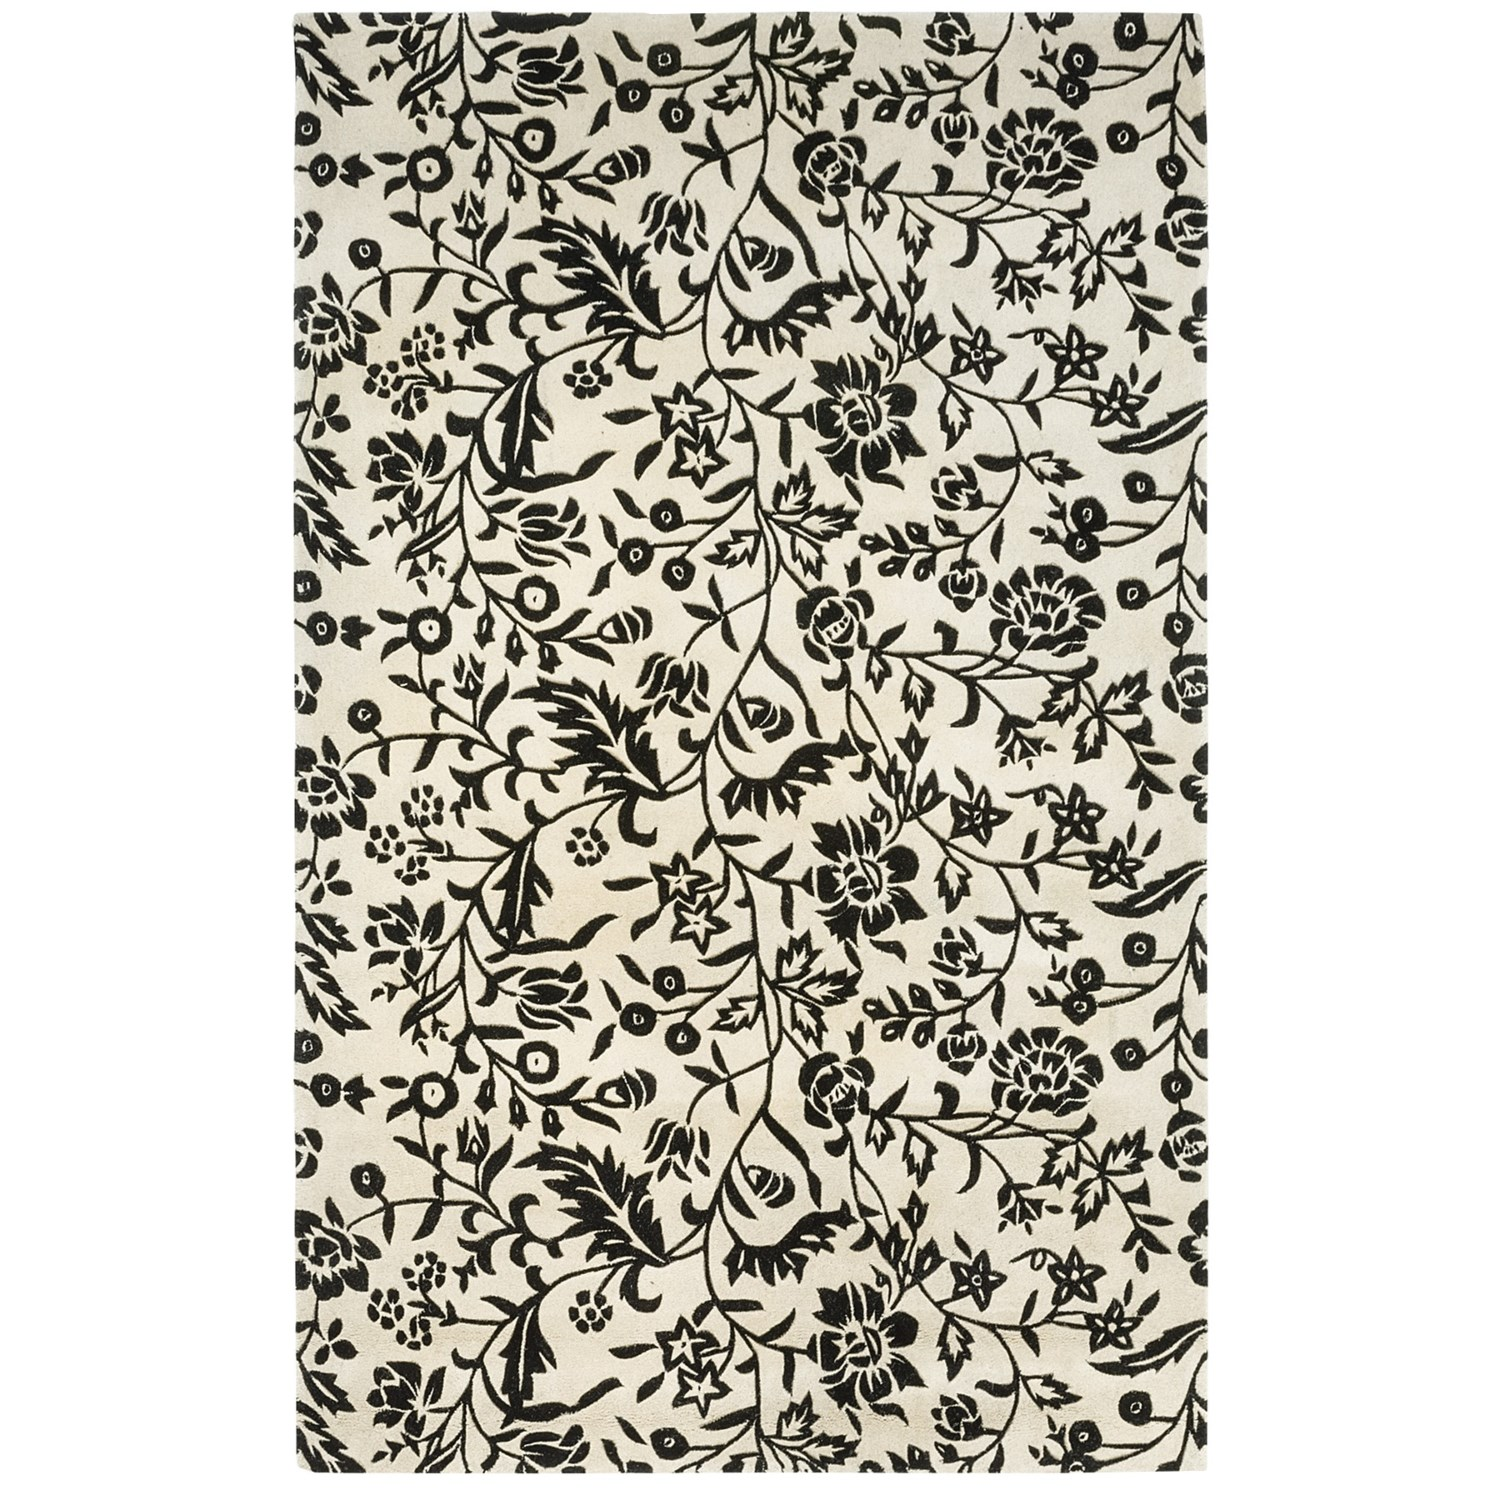 Hri Damask Collection Area Rug Hand Tufted Wool 8x11